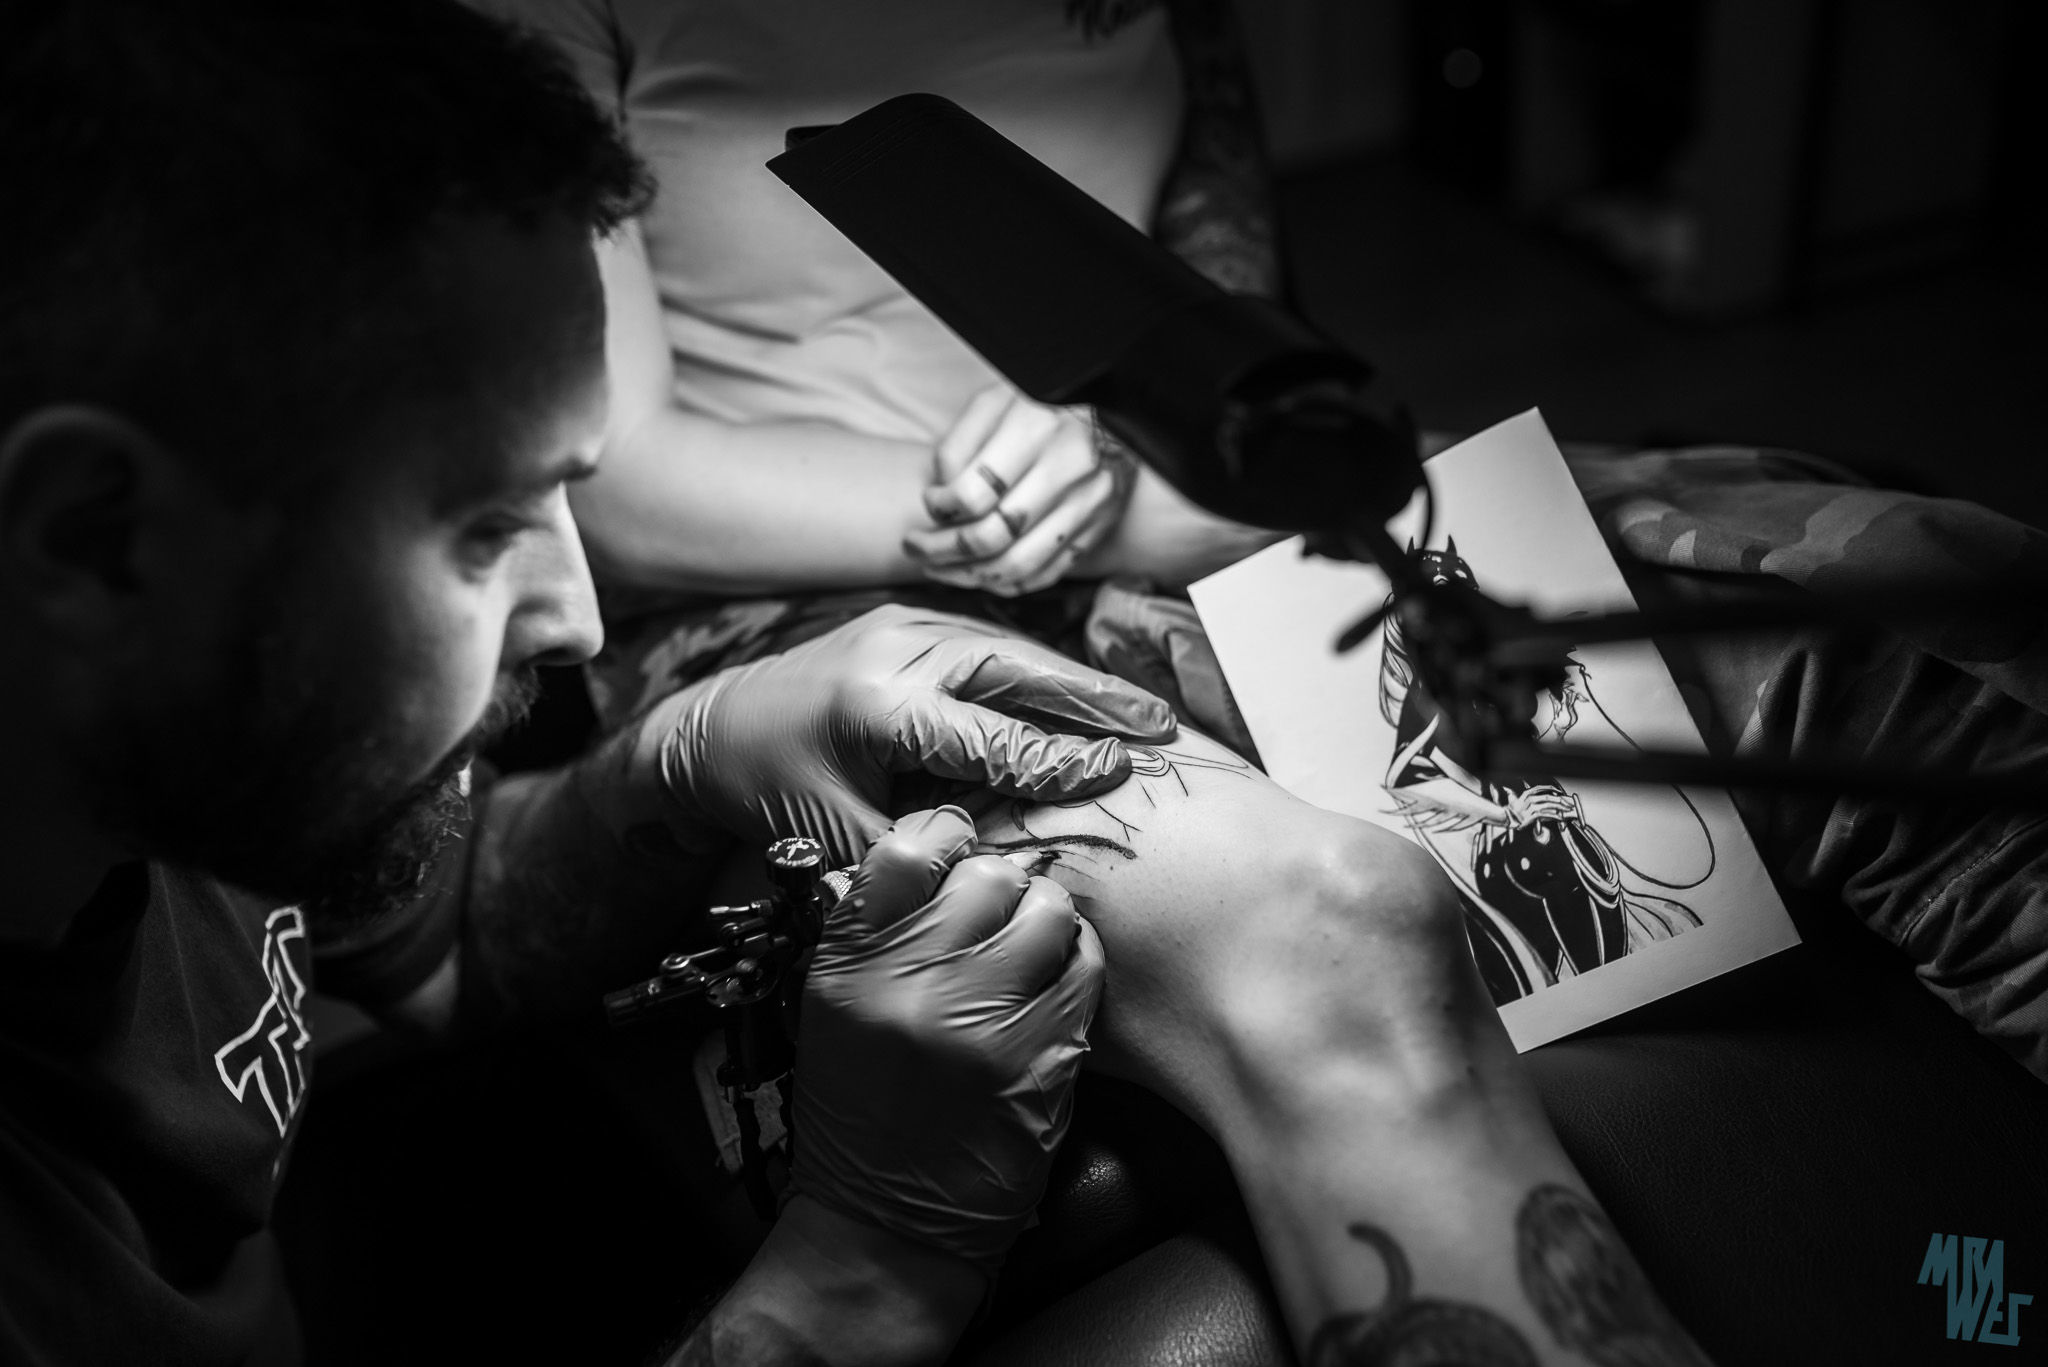 Nat_tattoo_Tešlo__021__web